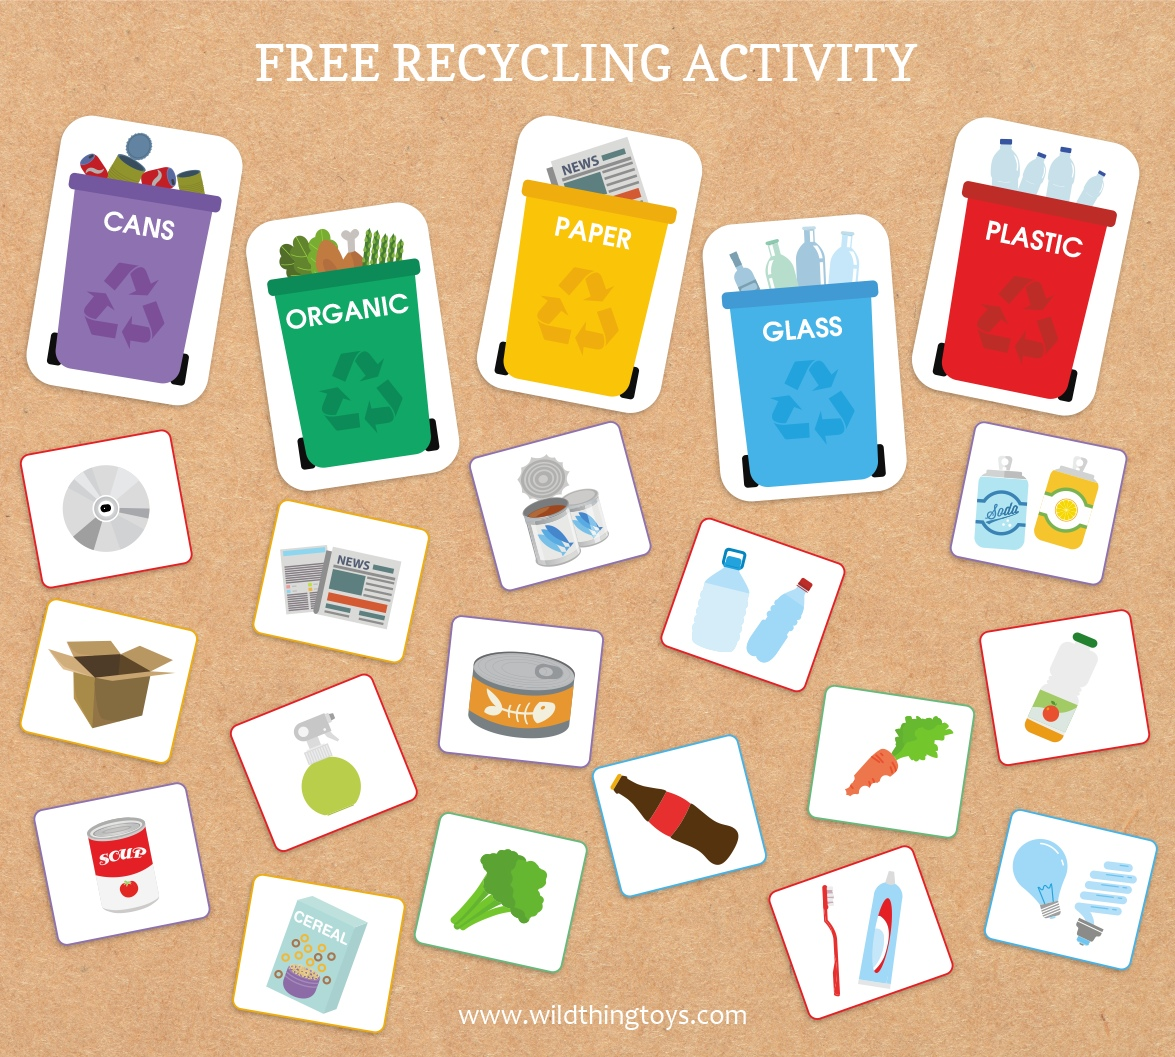 A Fun Printable Activity And Recycling Game To Help Your Kids Get Familiar With Recycling Great